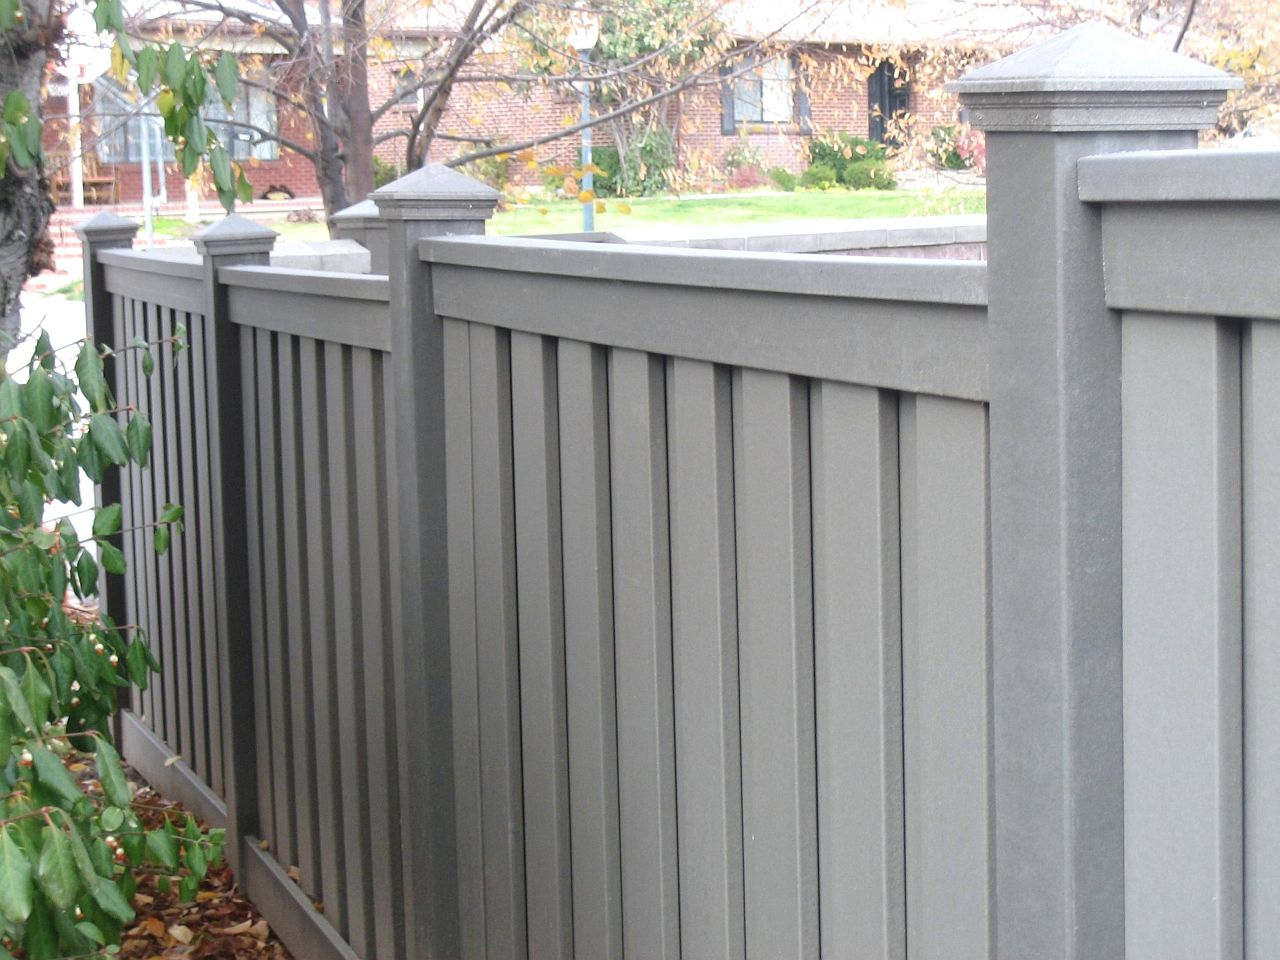 Trex fencing trex fencing cost ma composite fencing for Green privacy fence ideas